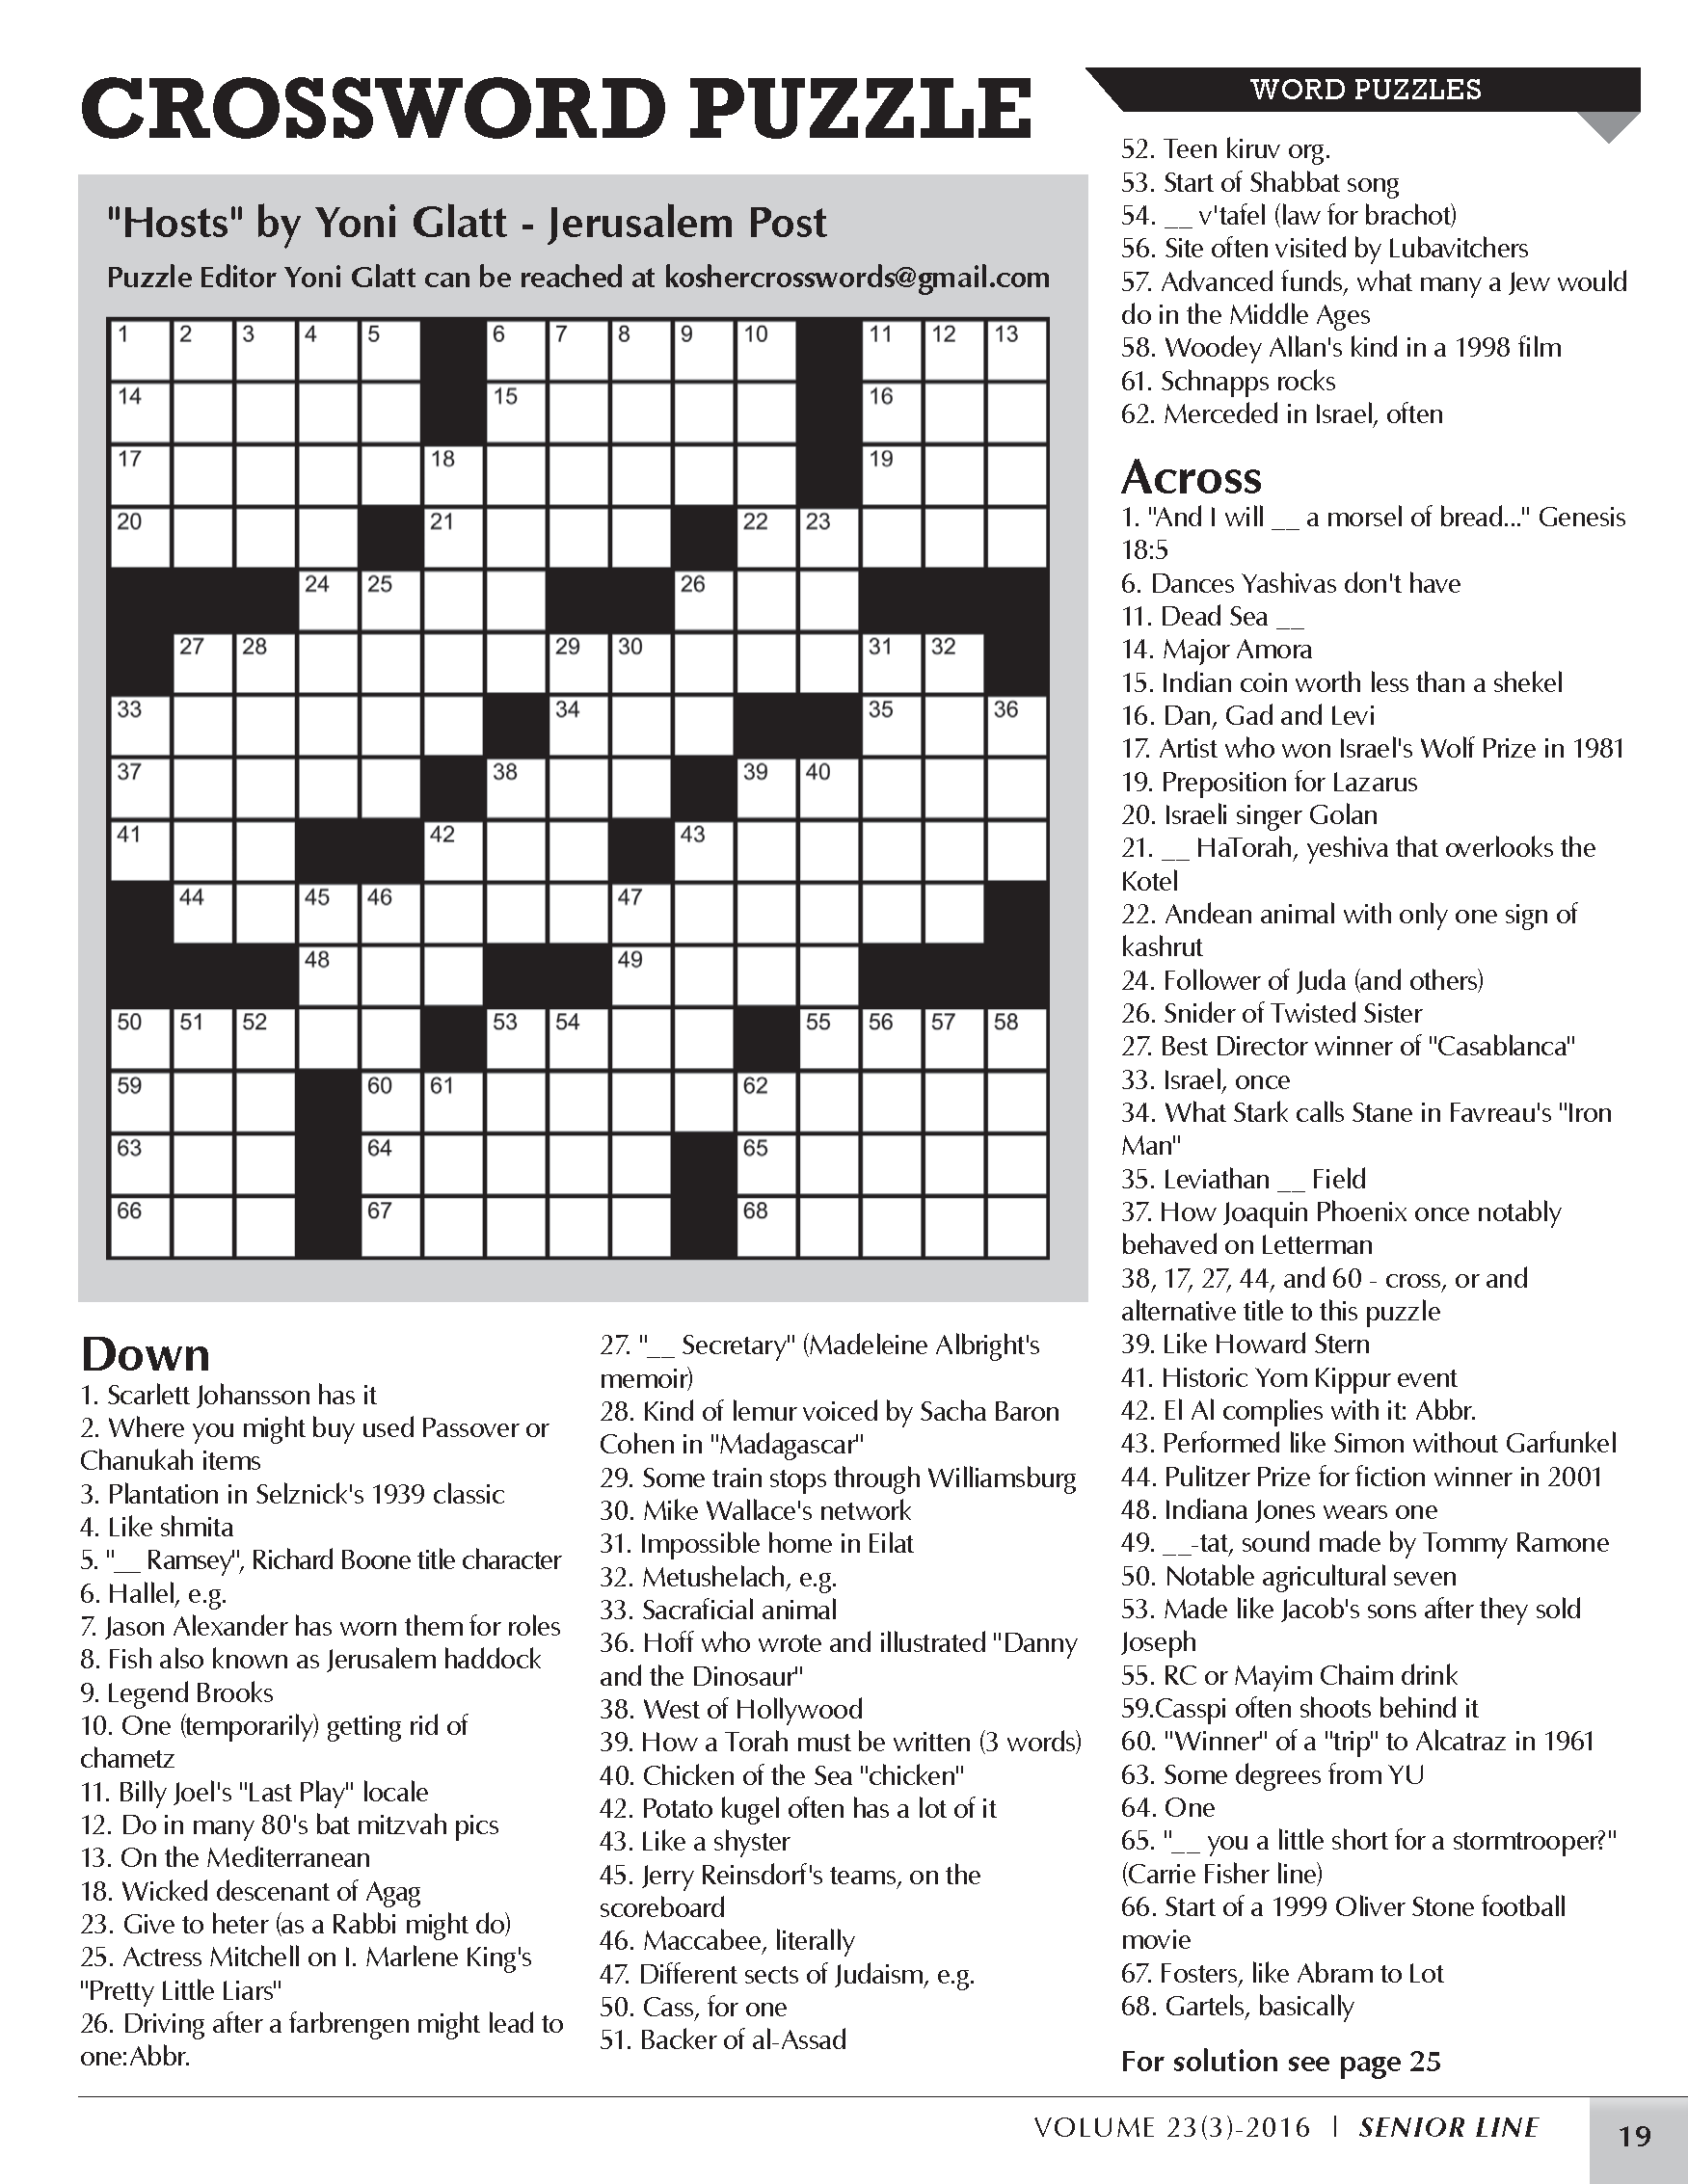 Crossword Puzzle To Test Your Vocabulary Skills - Jewish